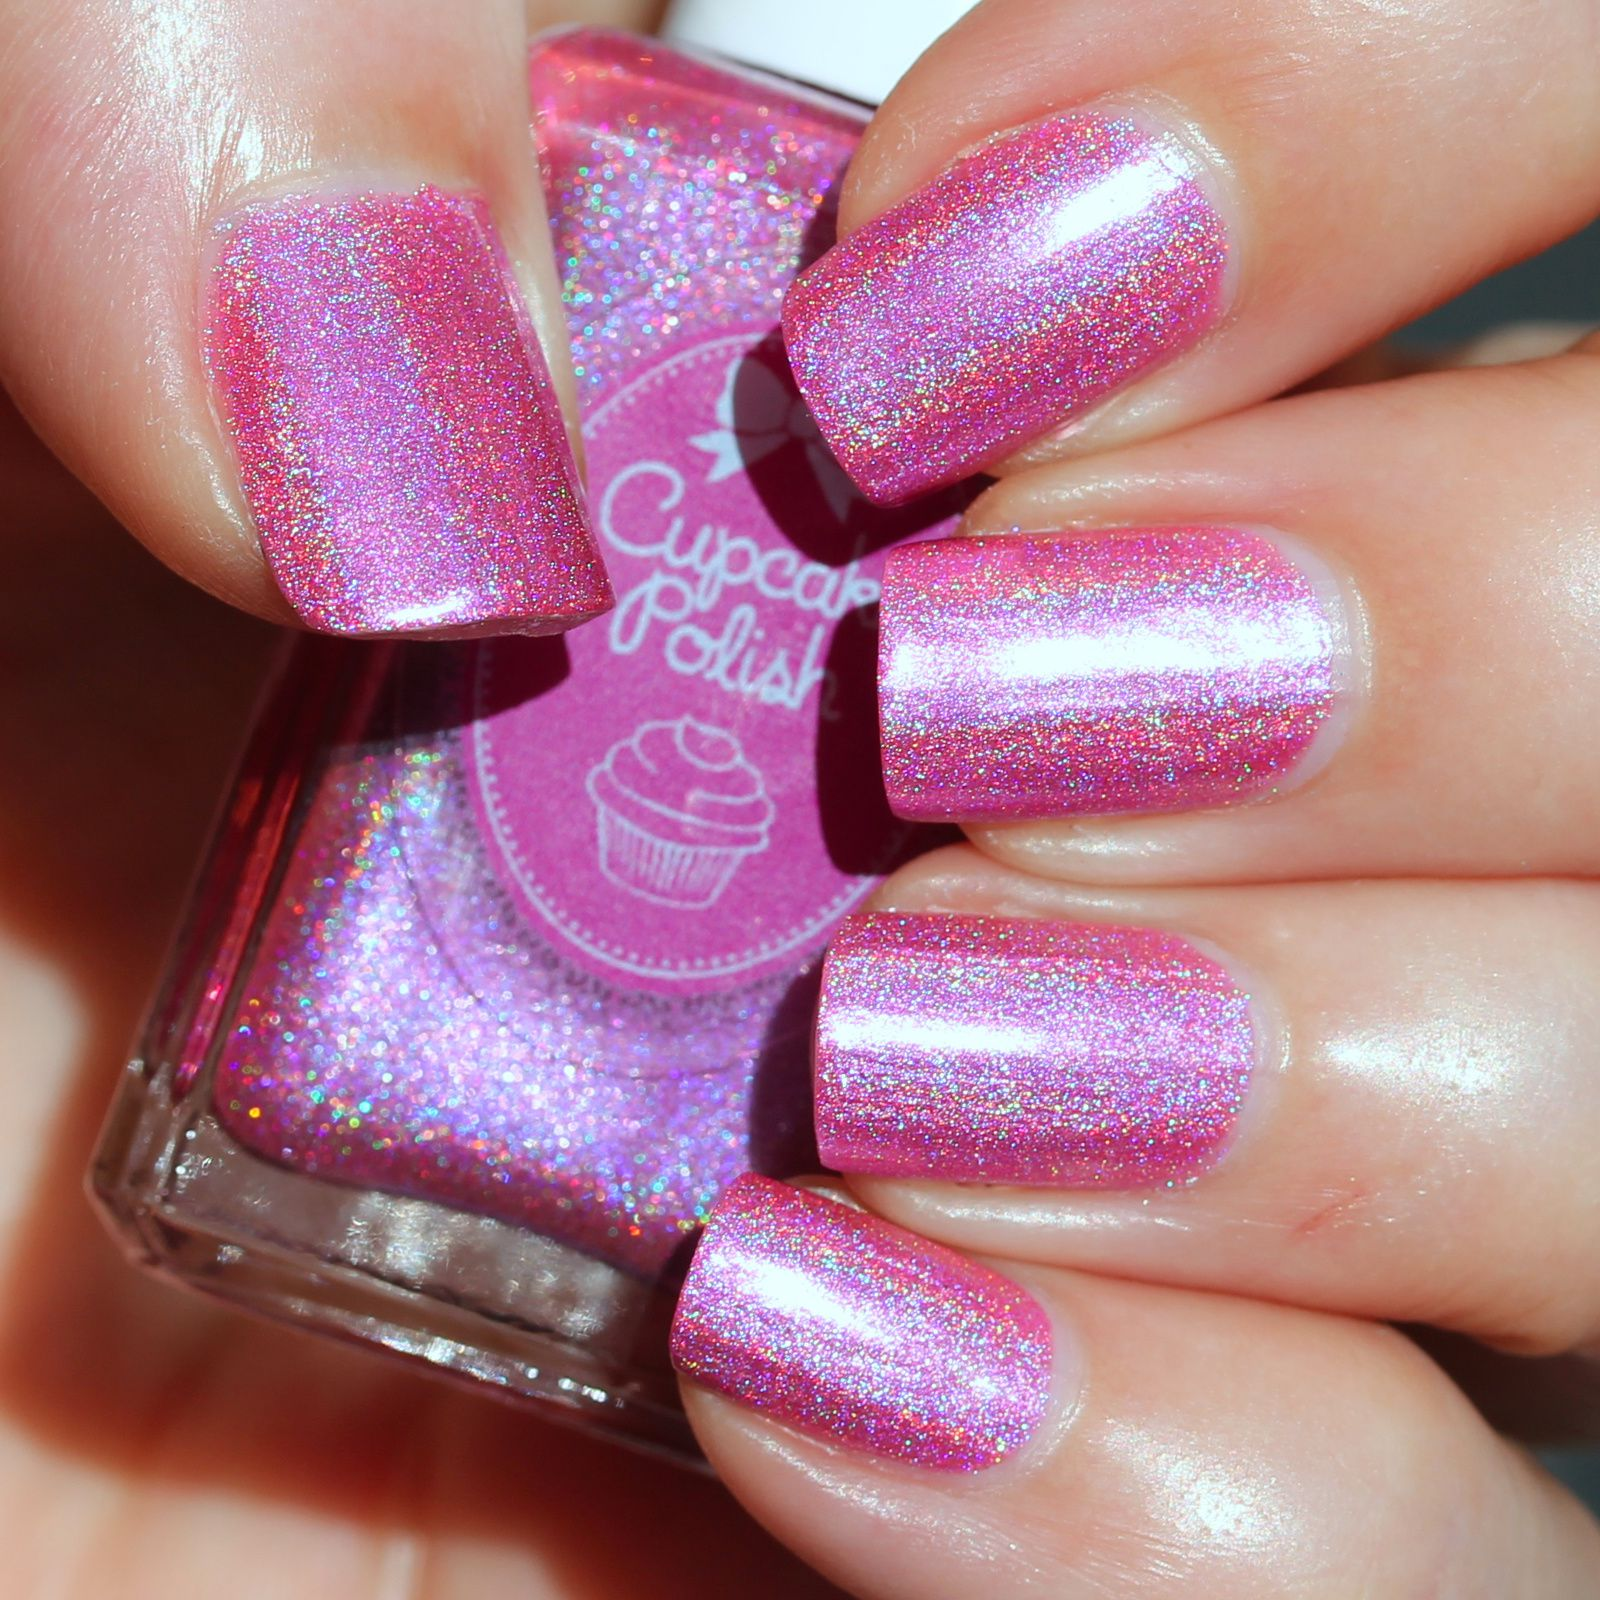 Cupcake Polish Barbie Girl (2 coats, no top coat)